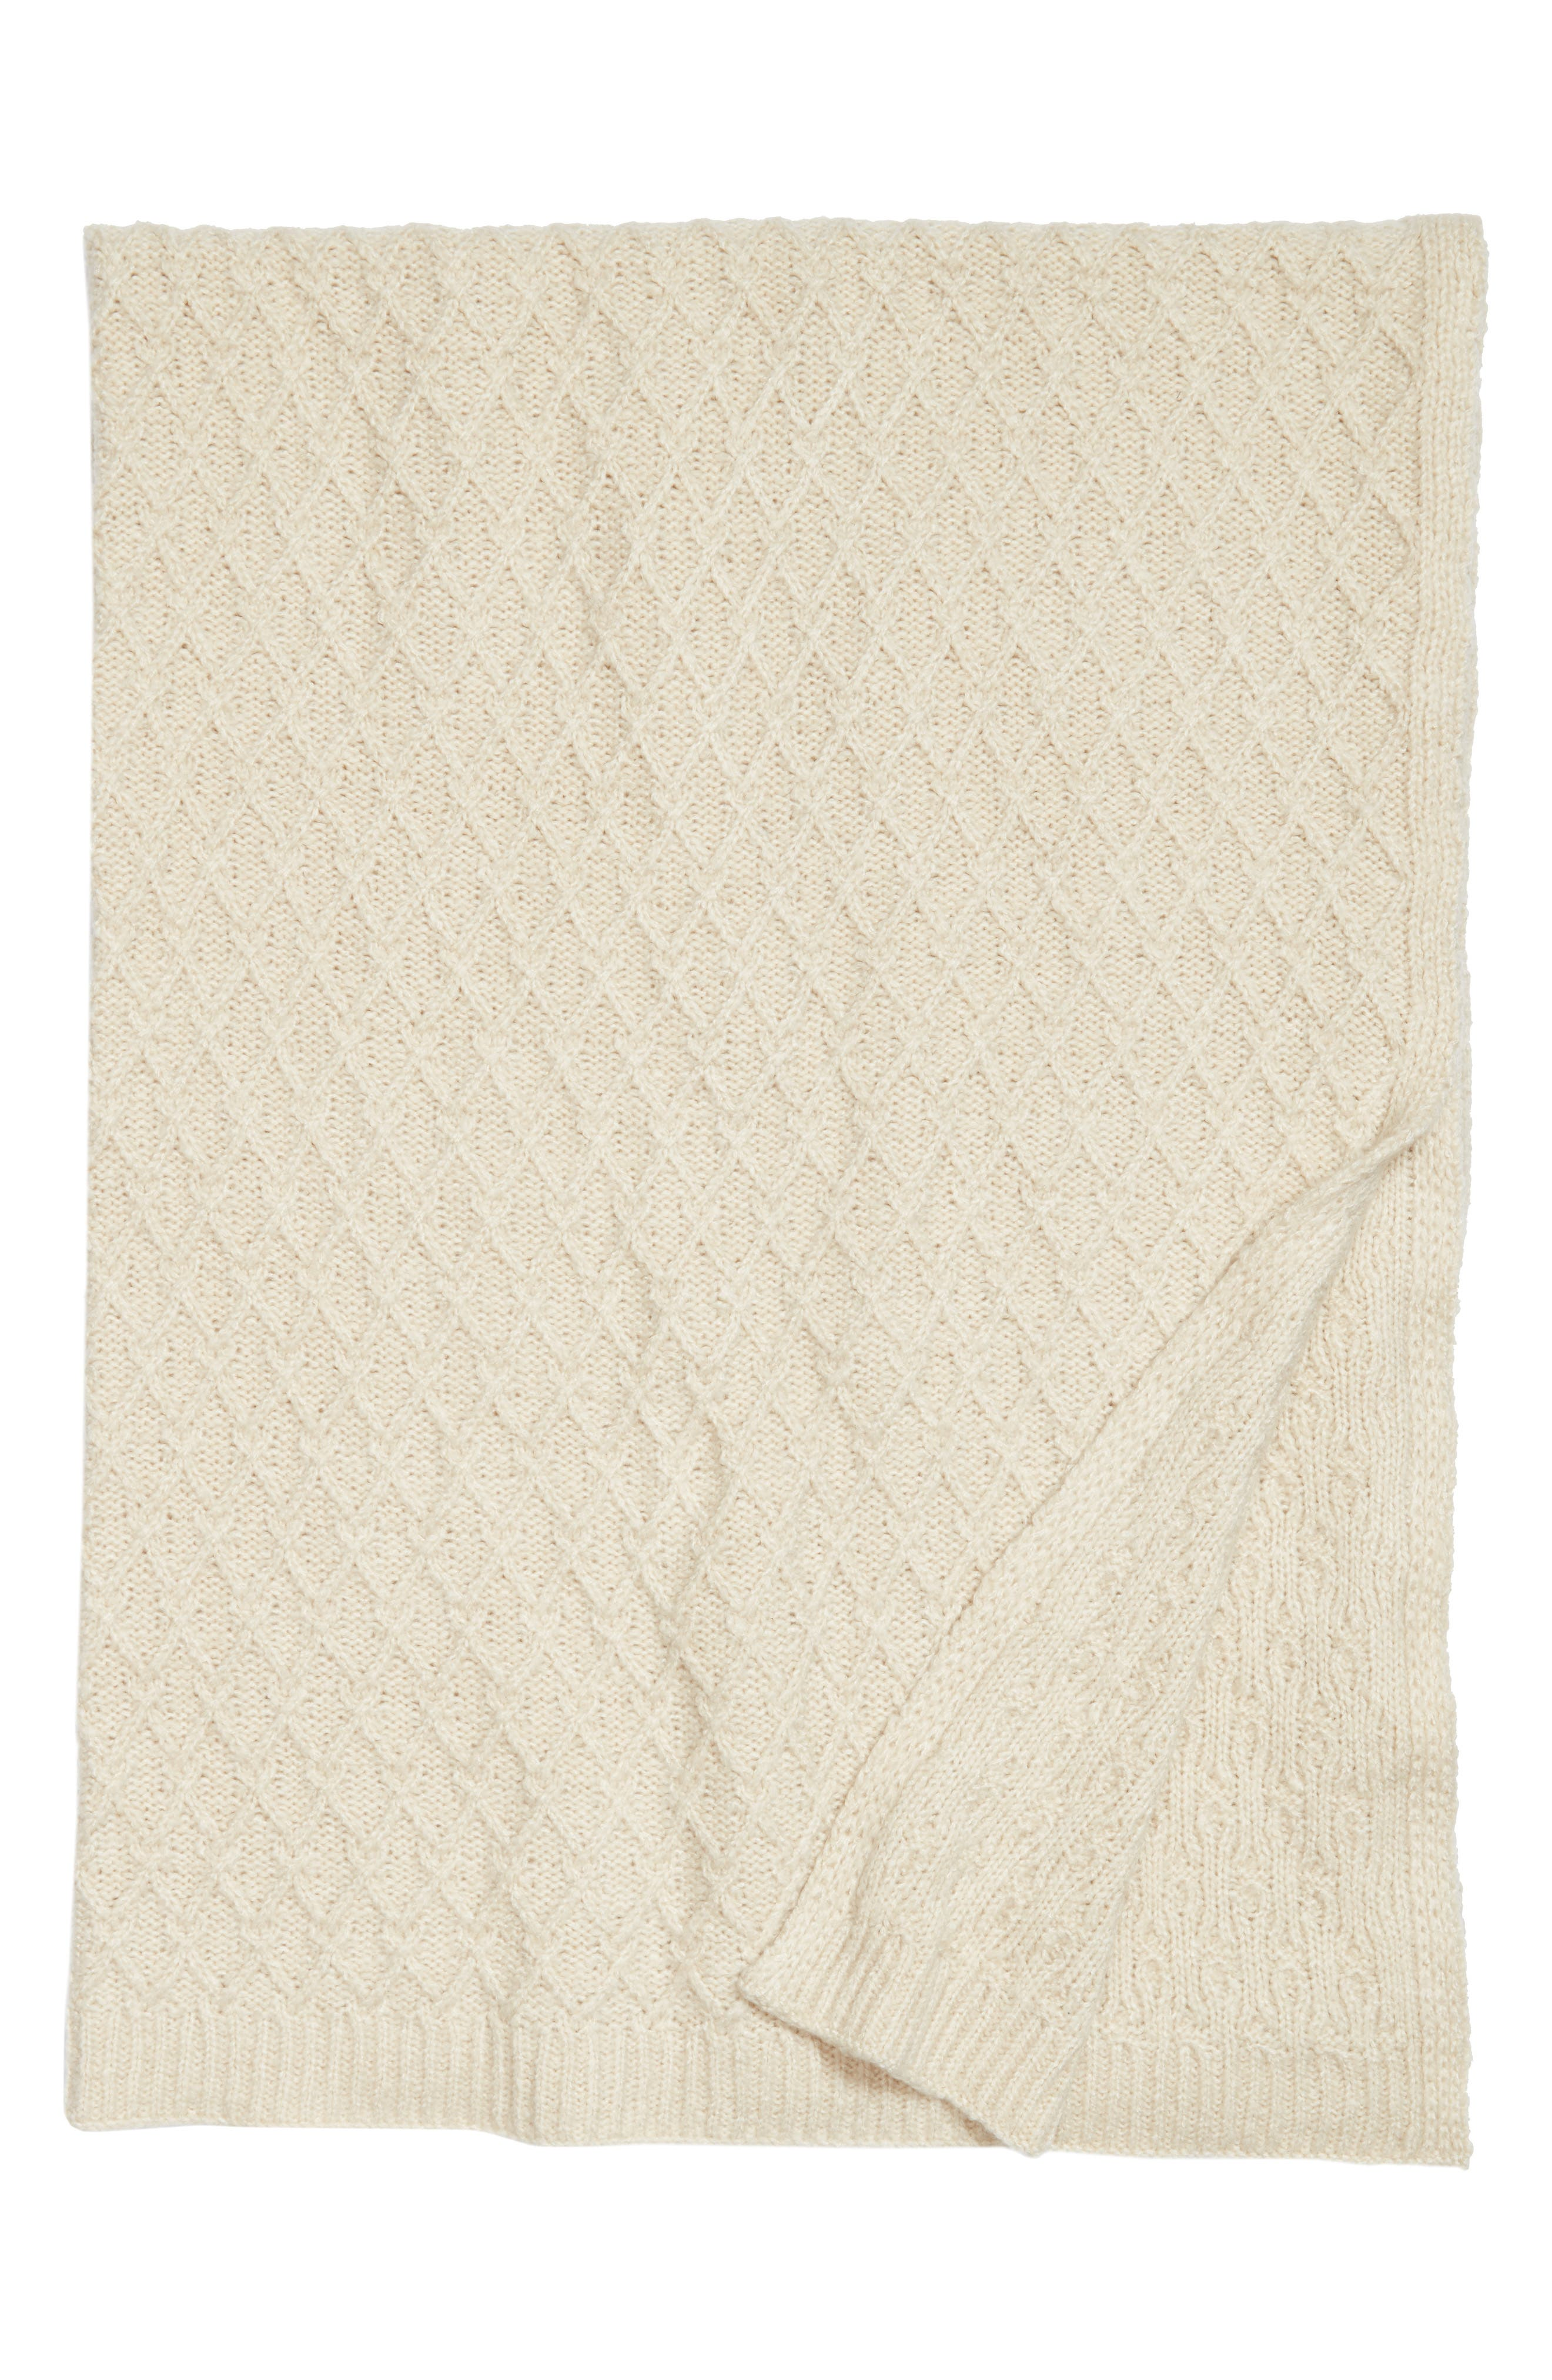 Nordstrom at Home Diamond Knit Throw